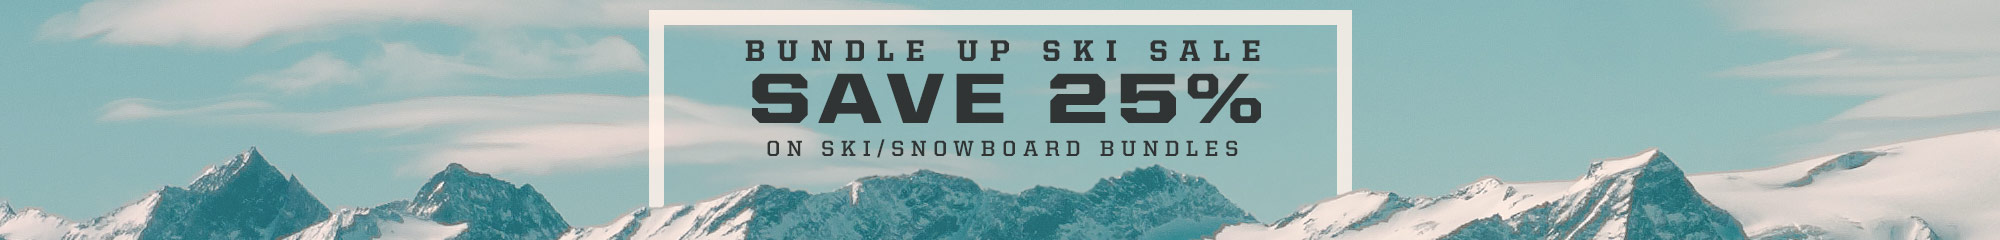 Bundle Up and Save 25% on Ski and Snowboard Gear.